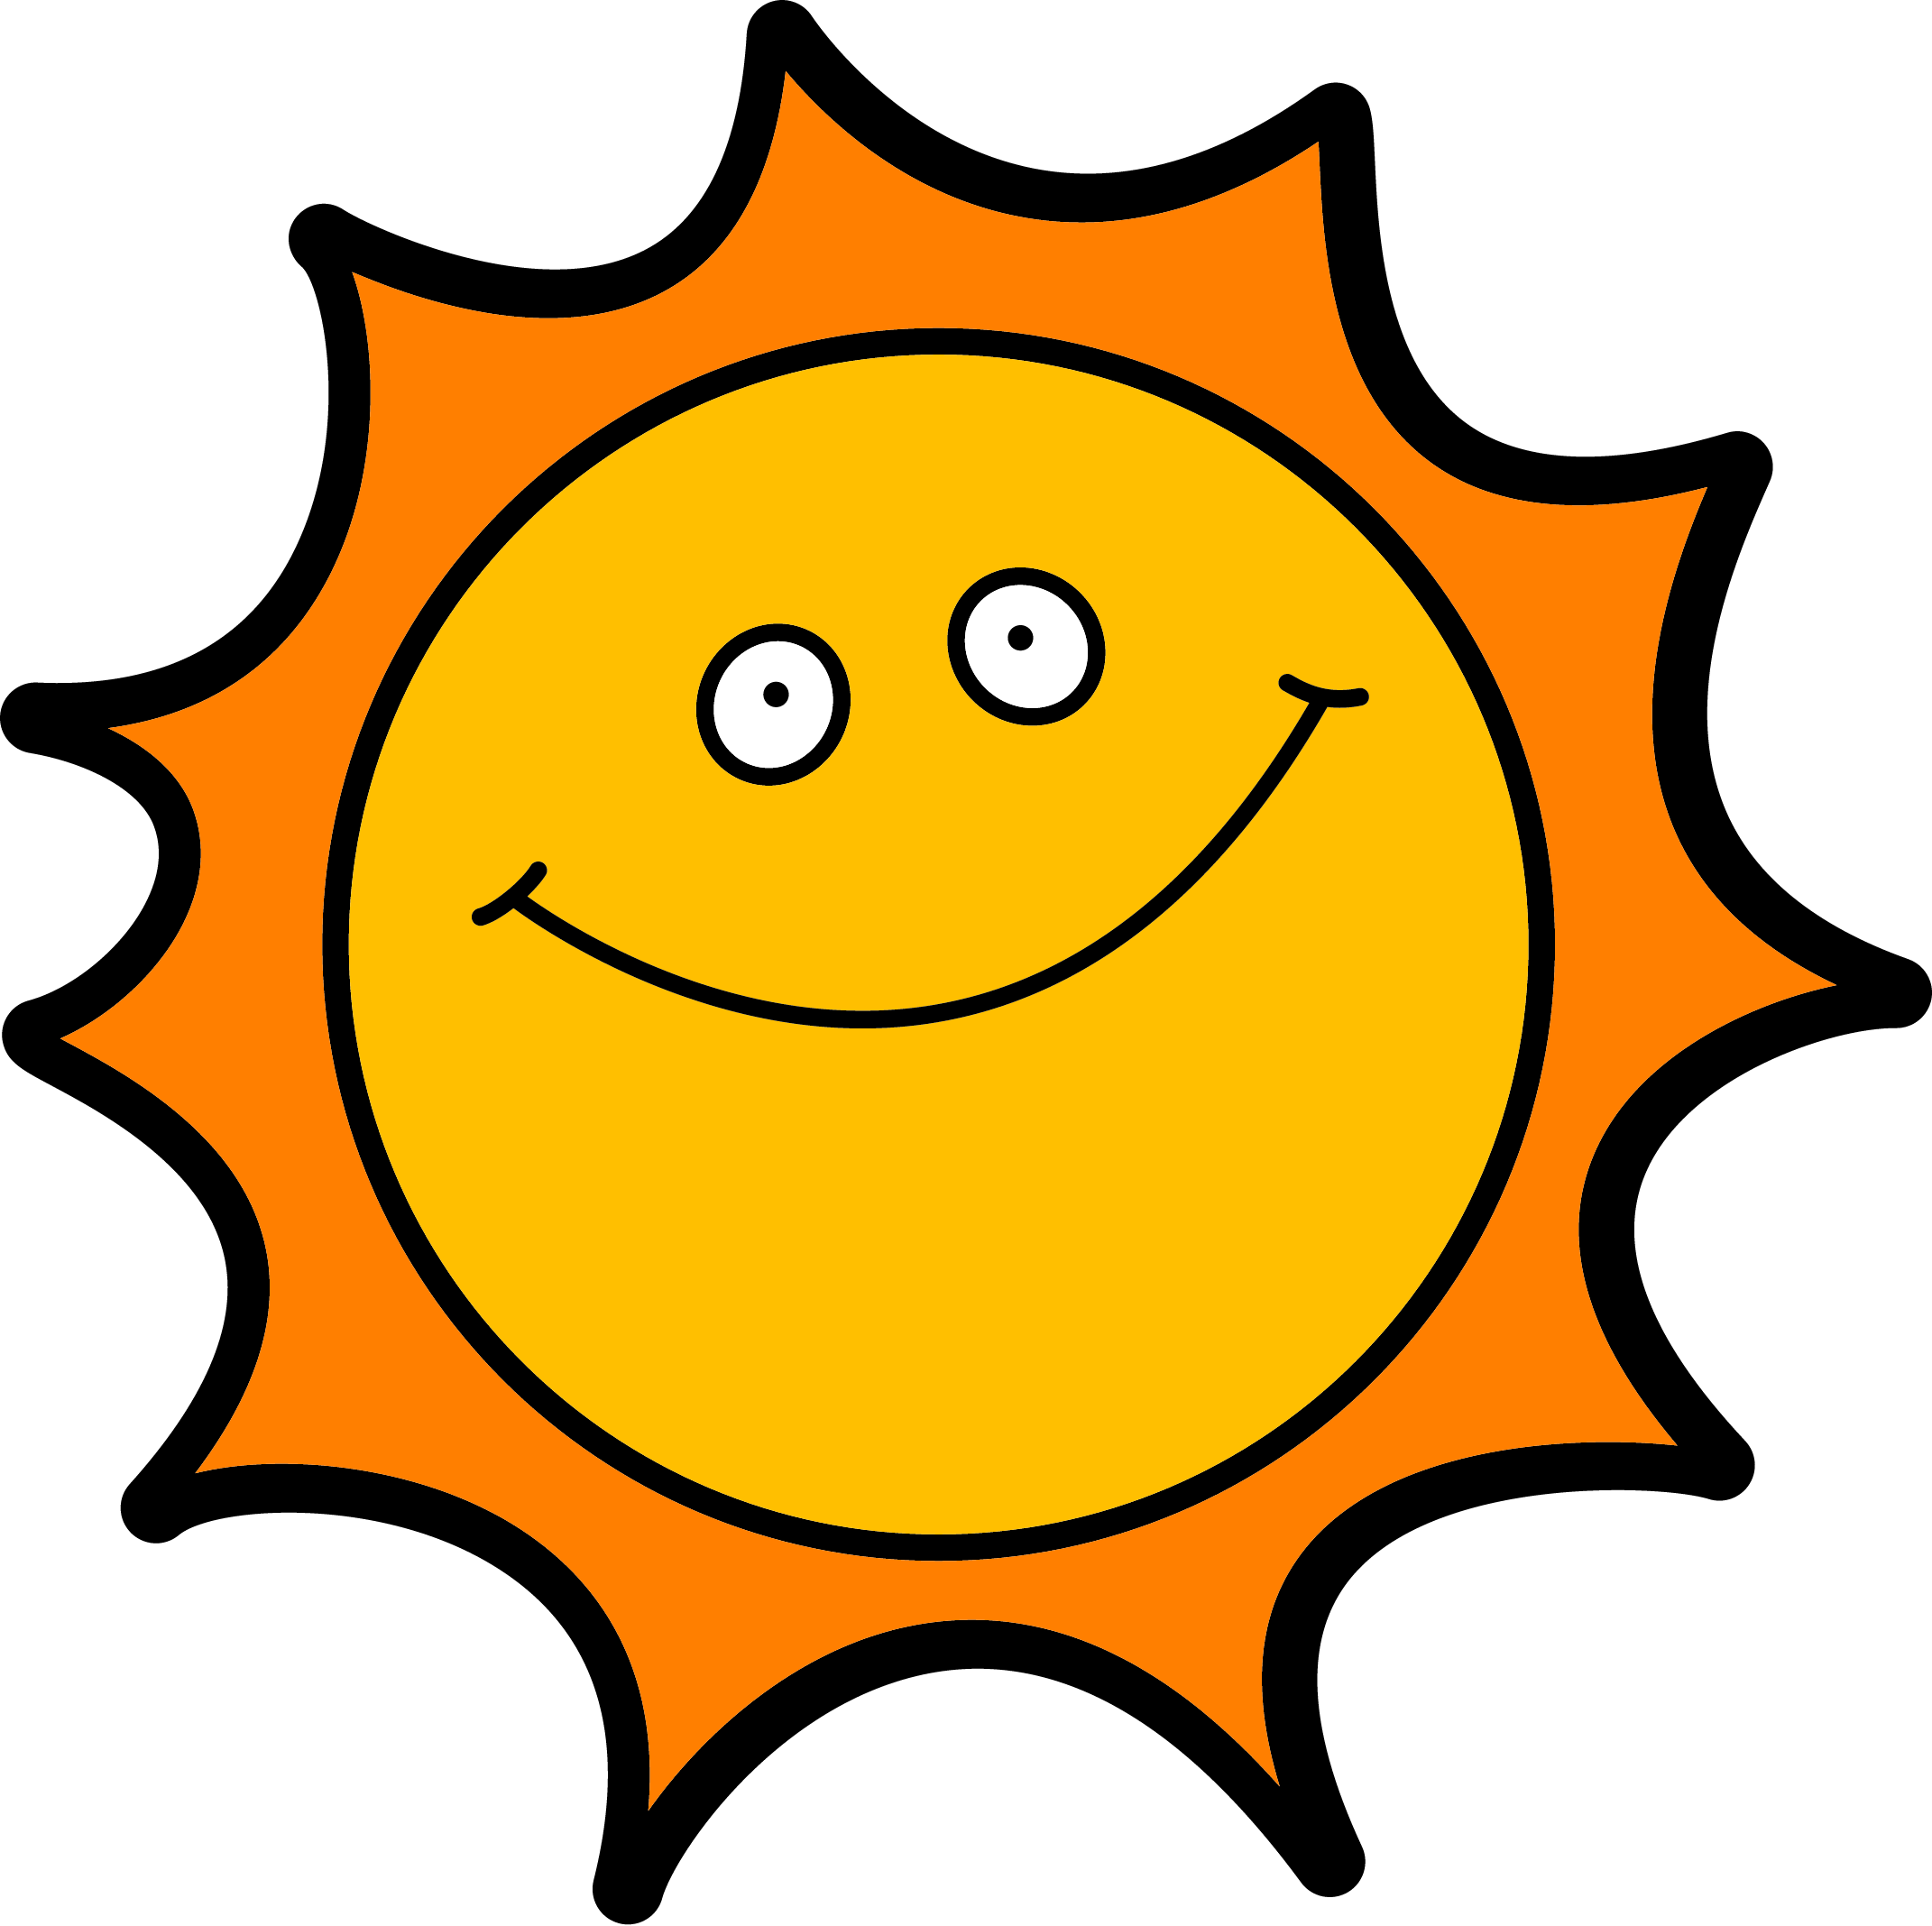 Happy sun wikiclipart . Clipart library library day